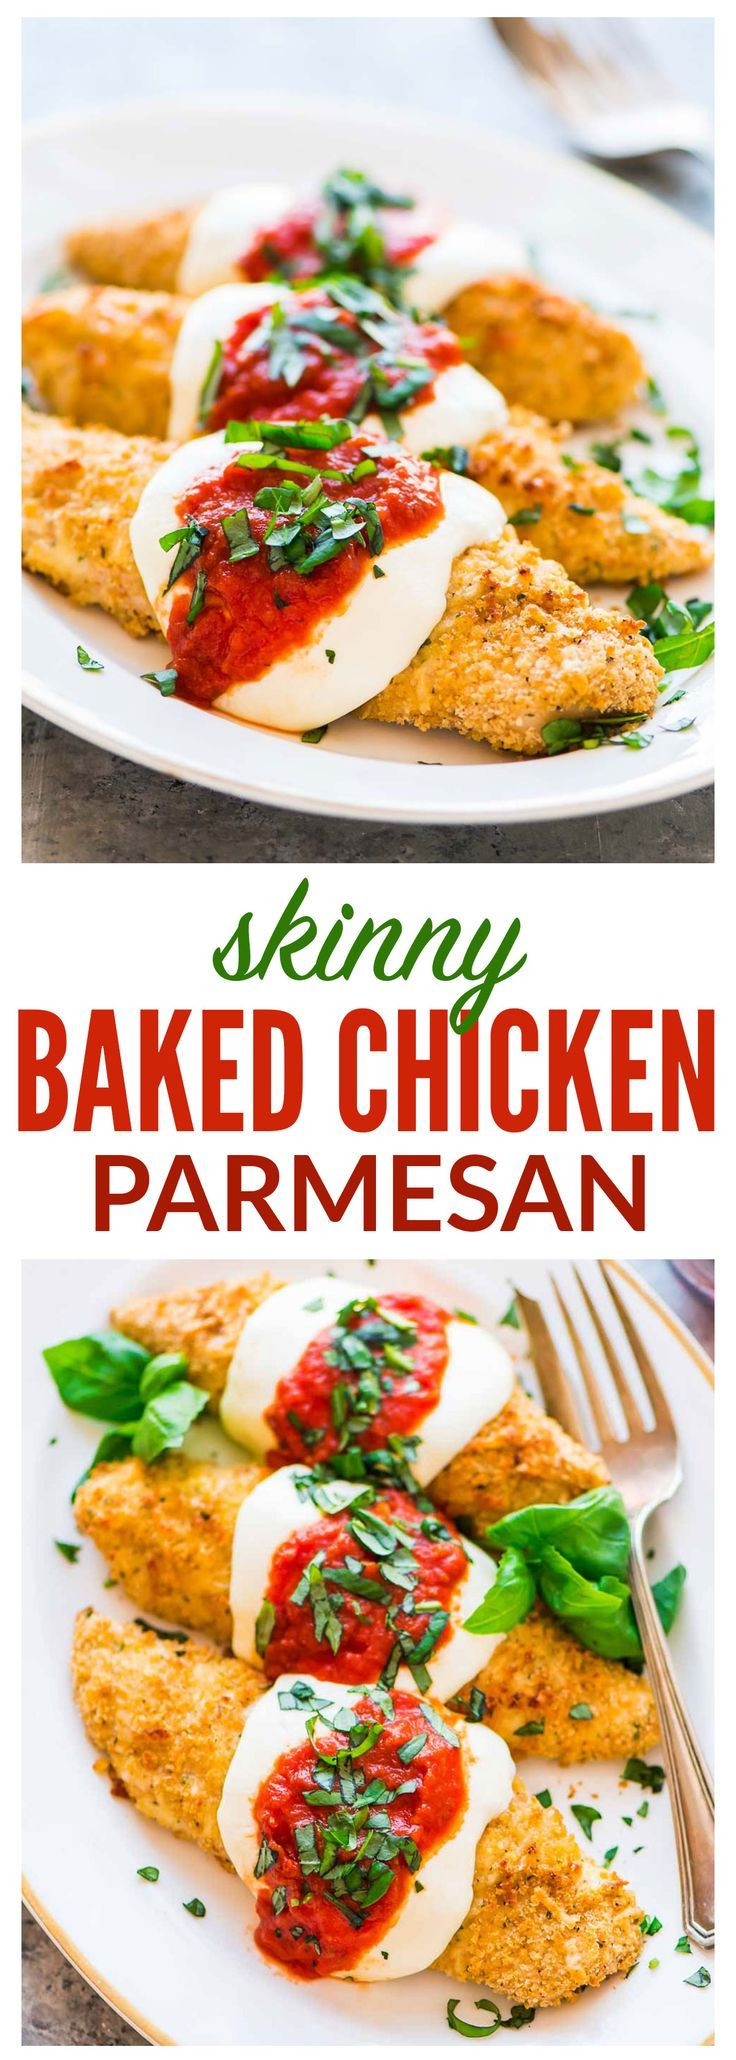 Healthy Kid Friendly Chicken Recipes  Healthy Baked Chicken Parmesan Crispy juicy and even